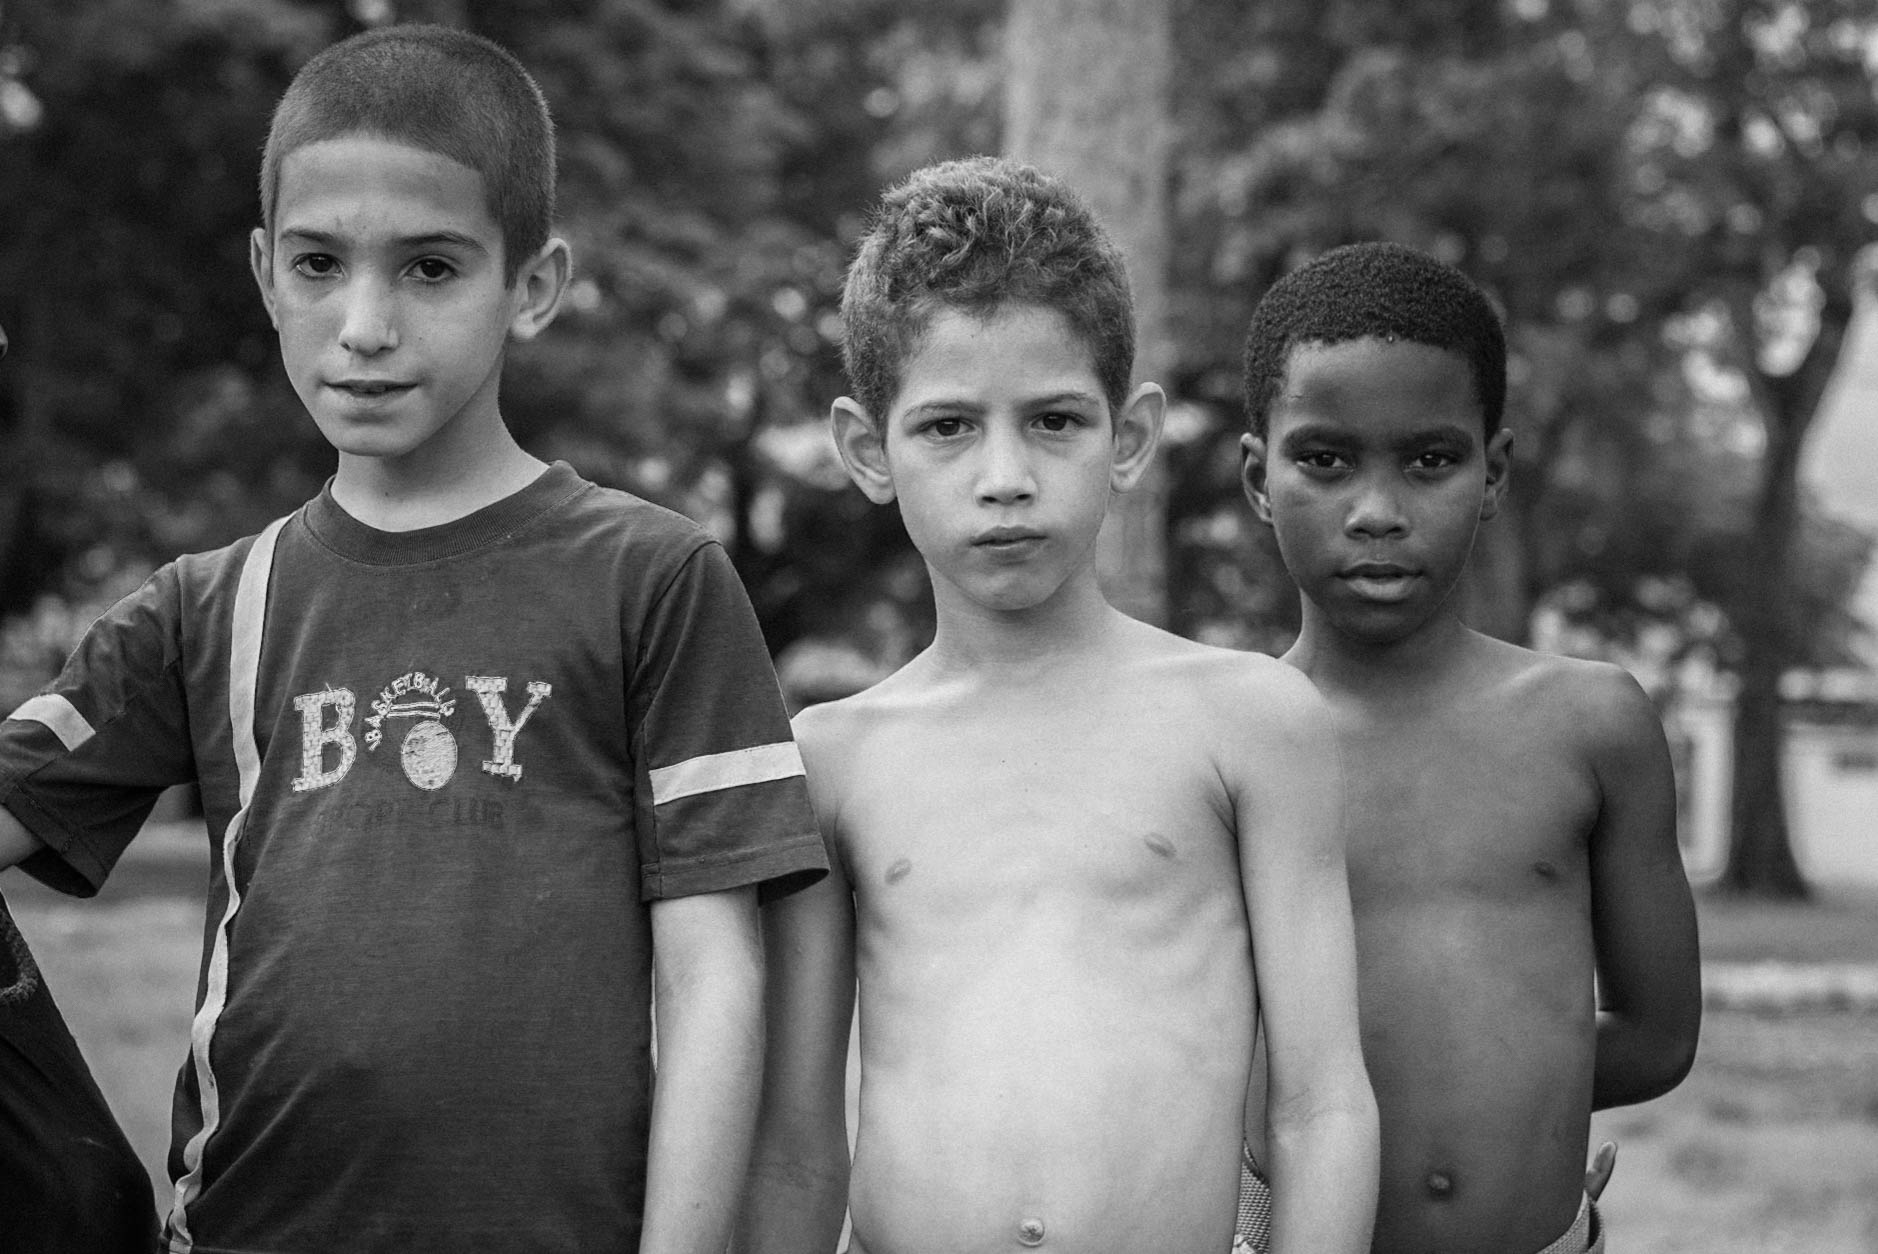 The real victims of the Cuban Embargo, the average Cuban citizen - Havana 2013